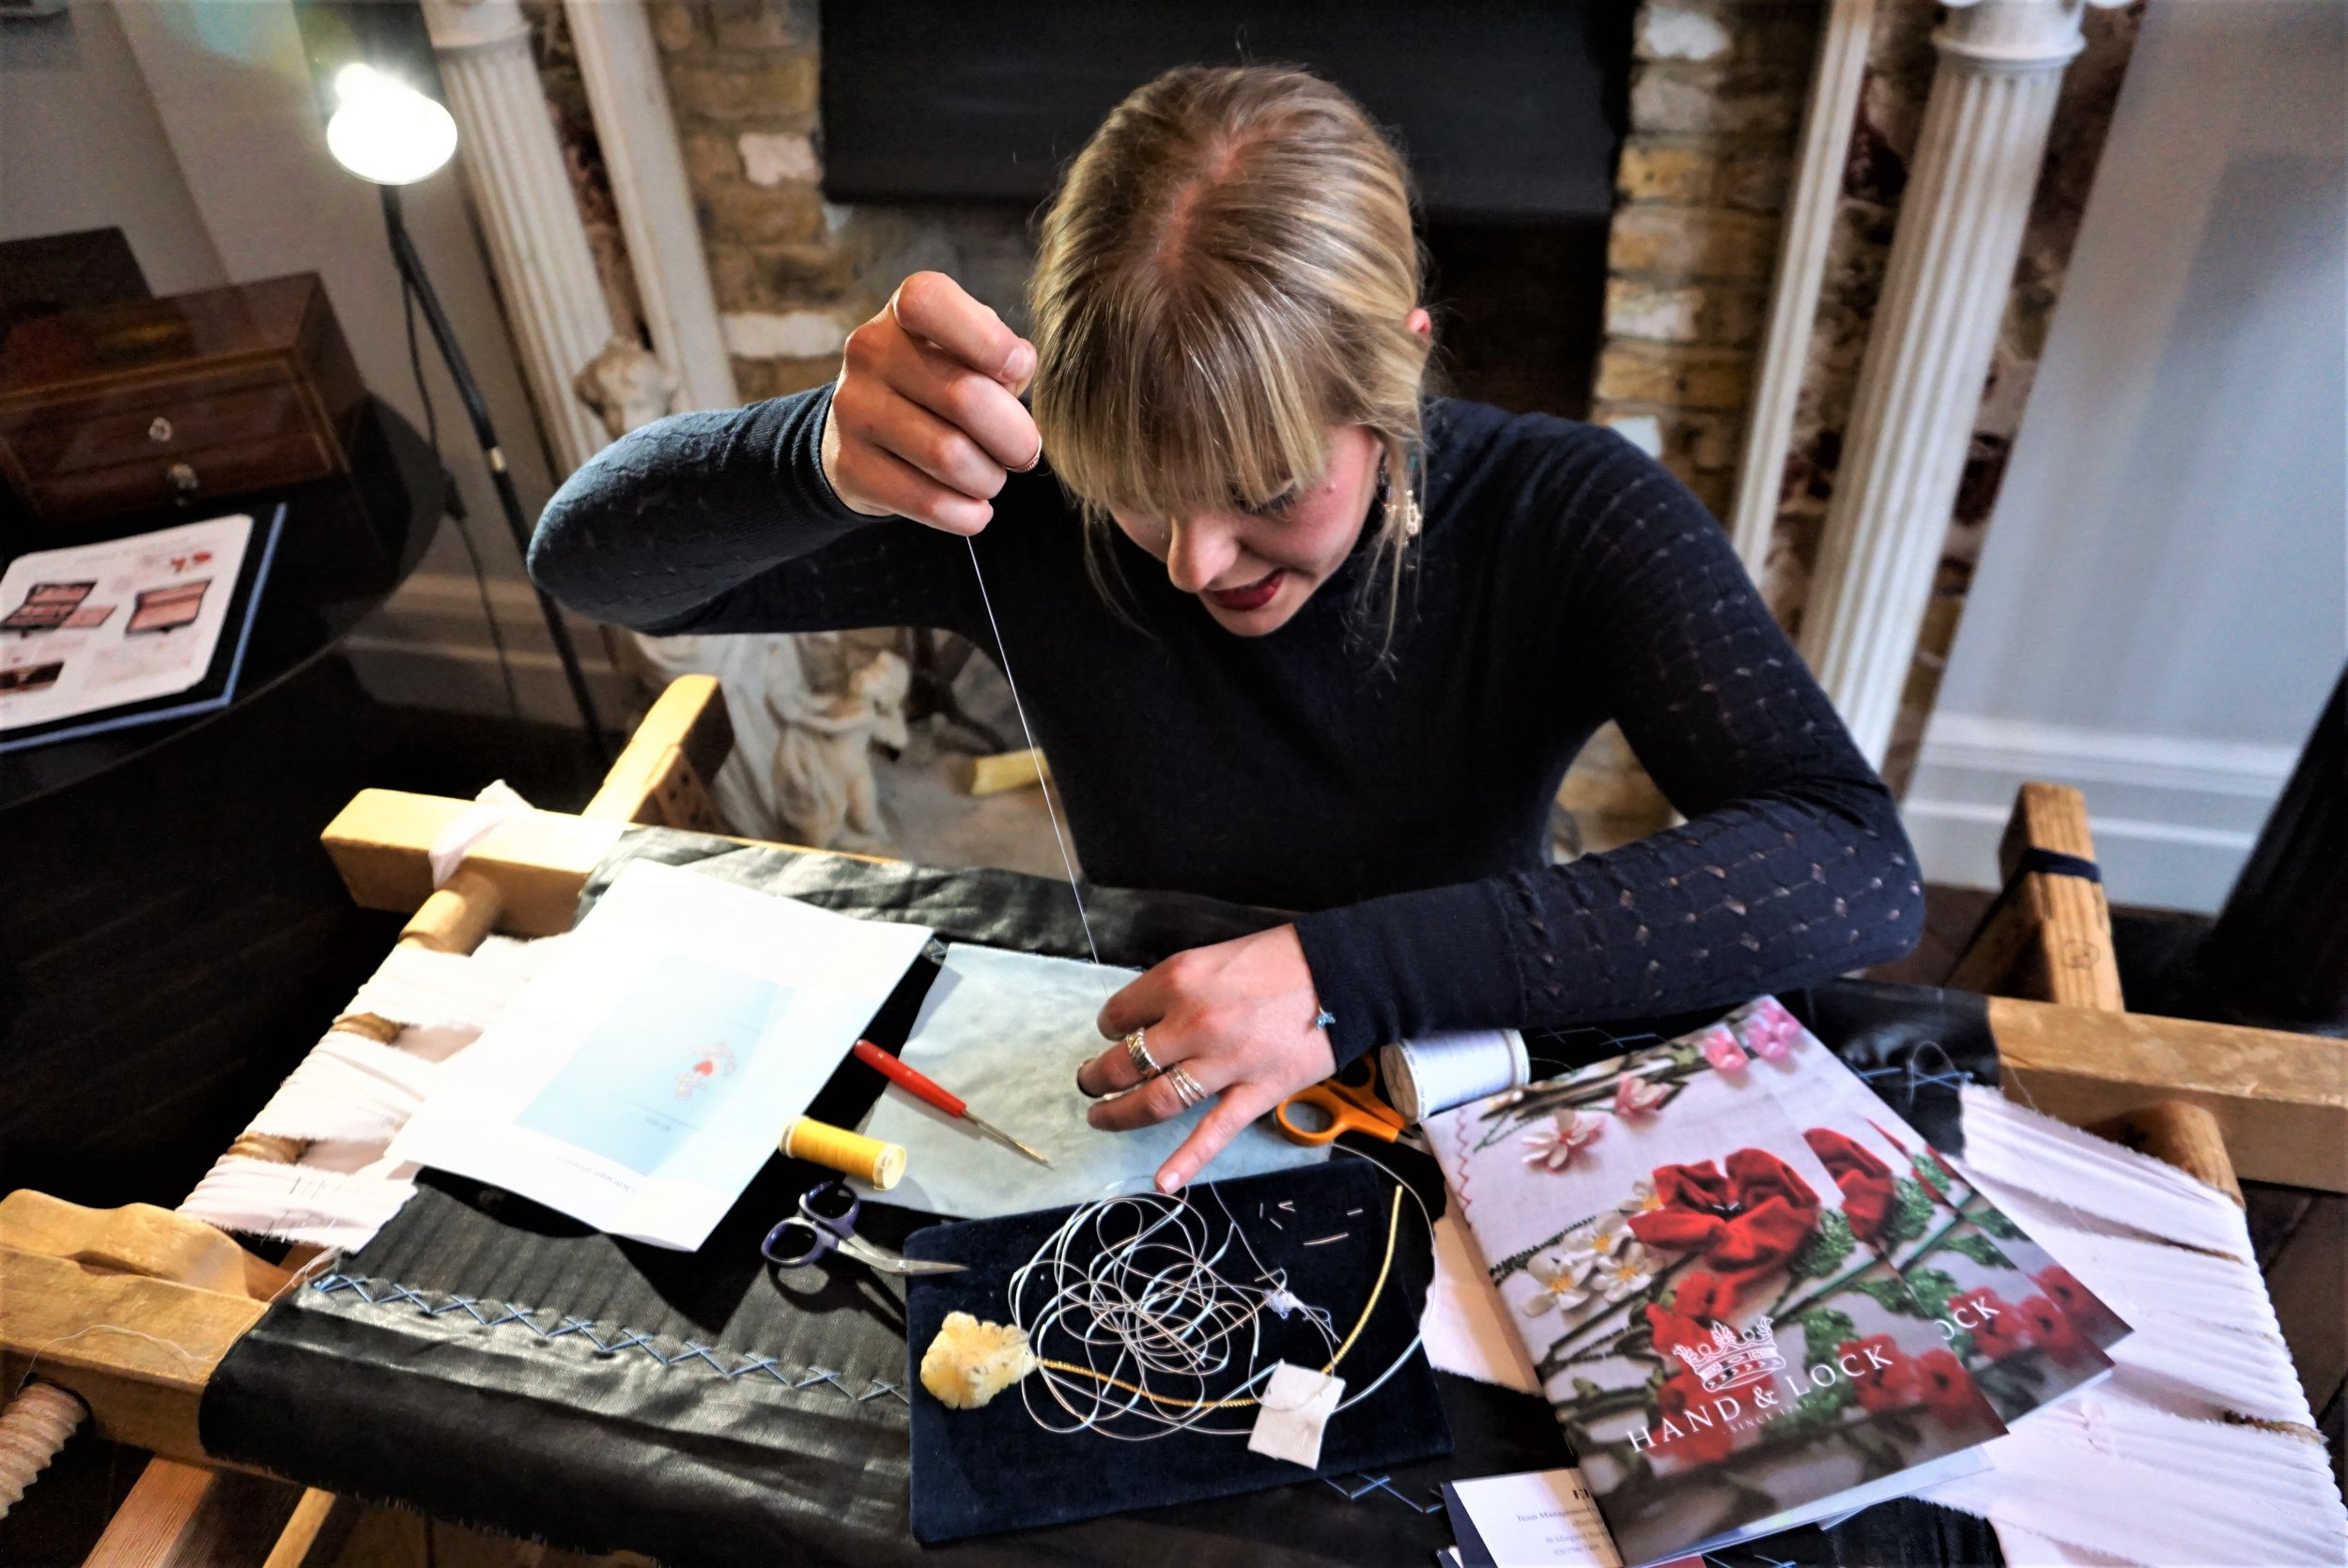 RuePigalle_Blog_LondonCraftWeek_BestO_JessicaMcCormack_CockPitArts_Restaurnats_hand and lock at jessica mccormack.JPG